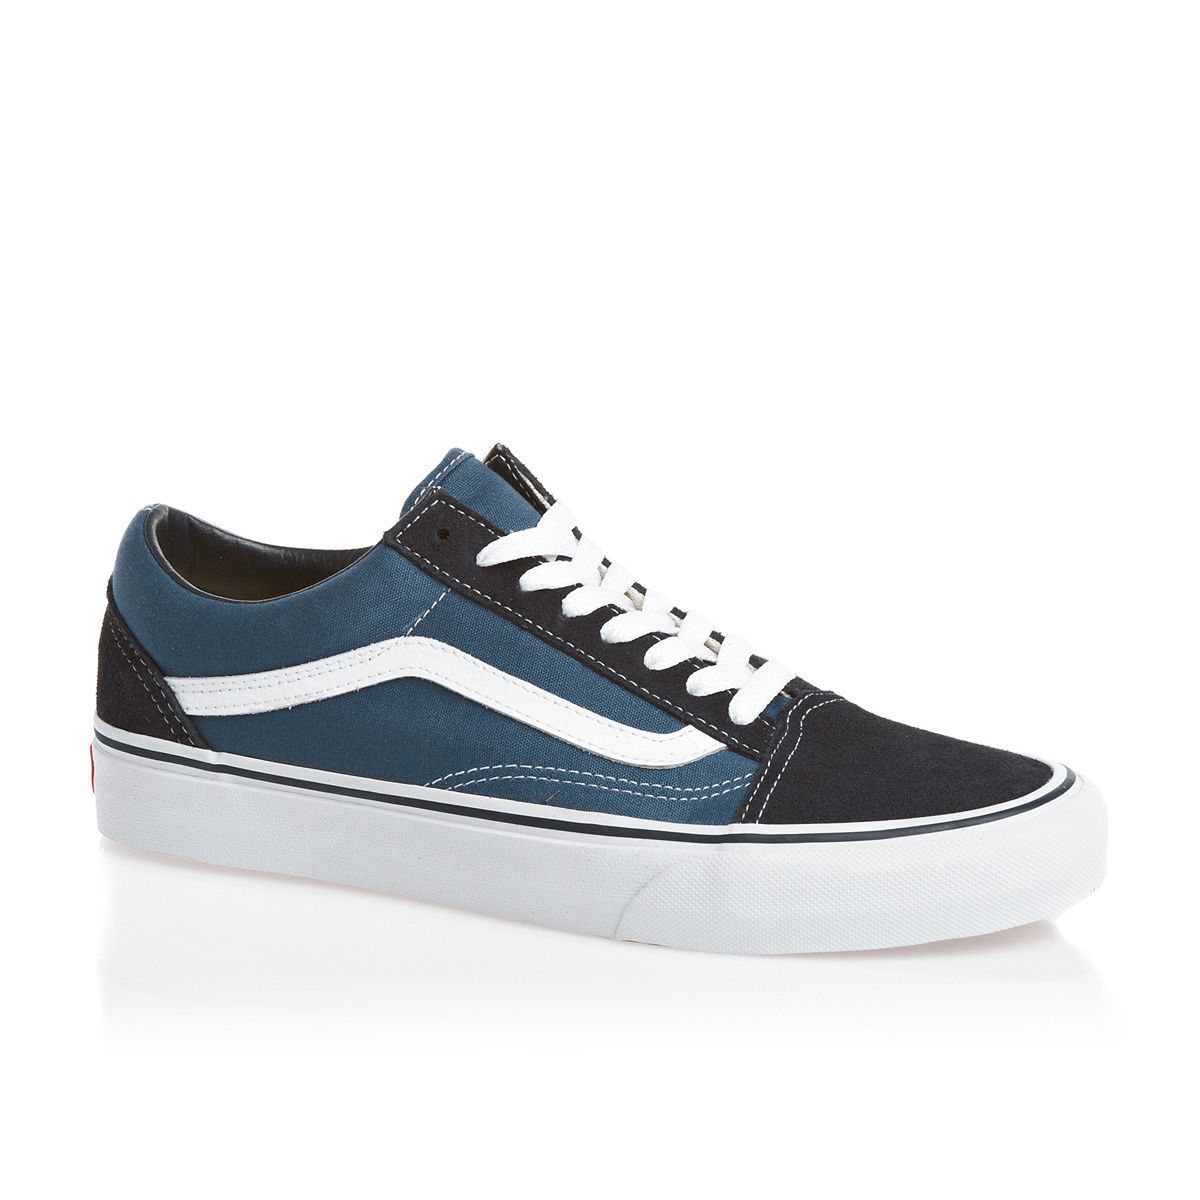 7e64d4e1cd6 Vans blue and black old skool